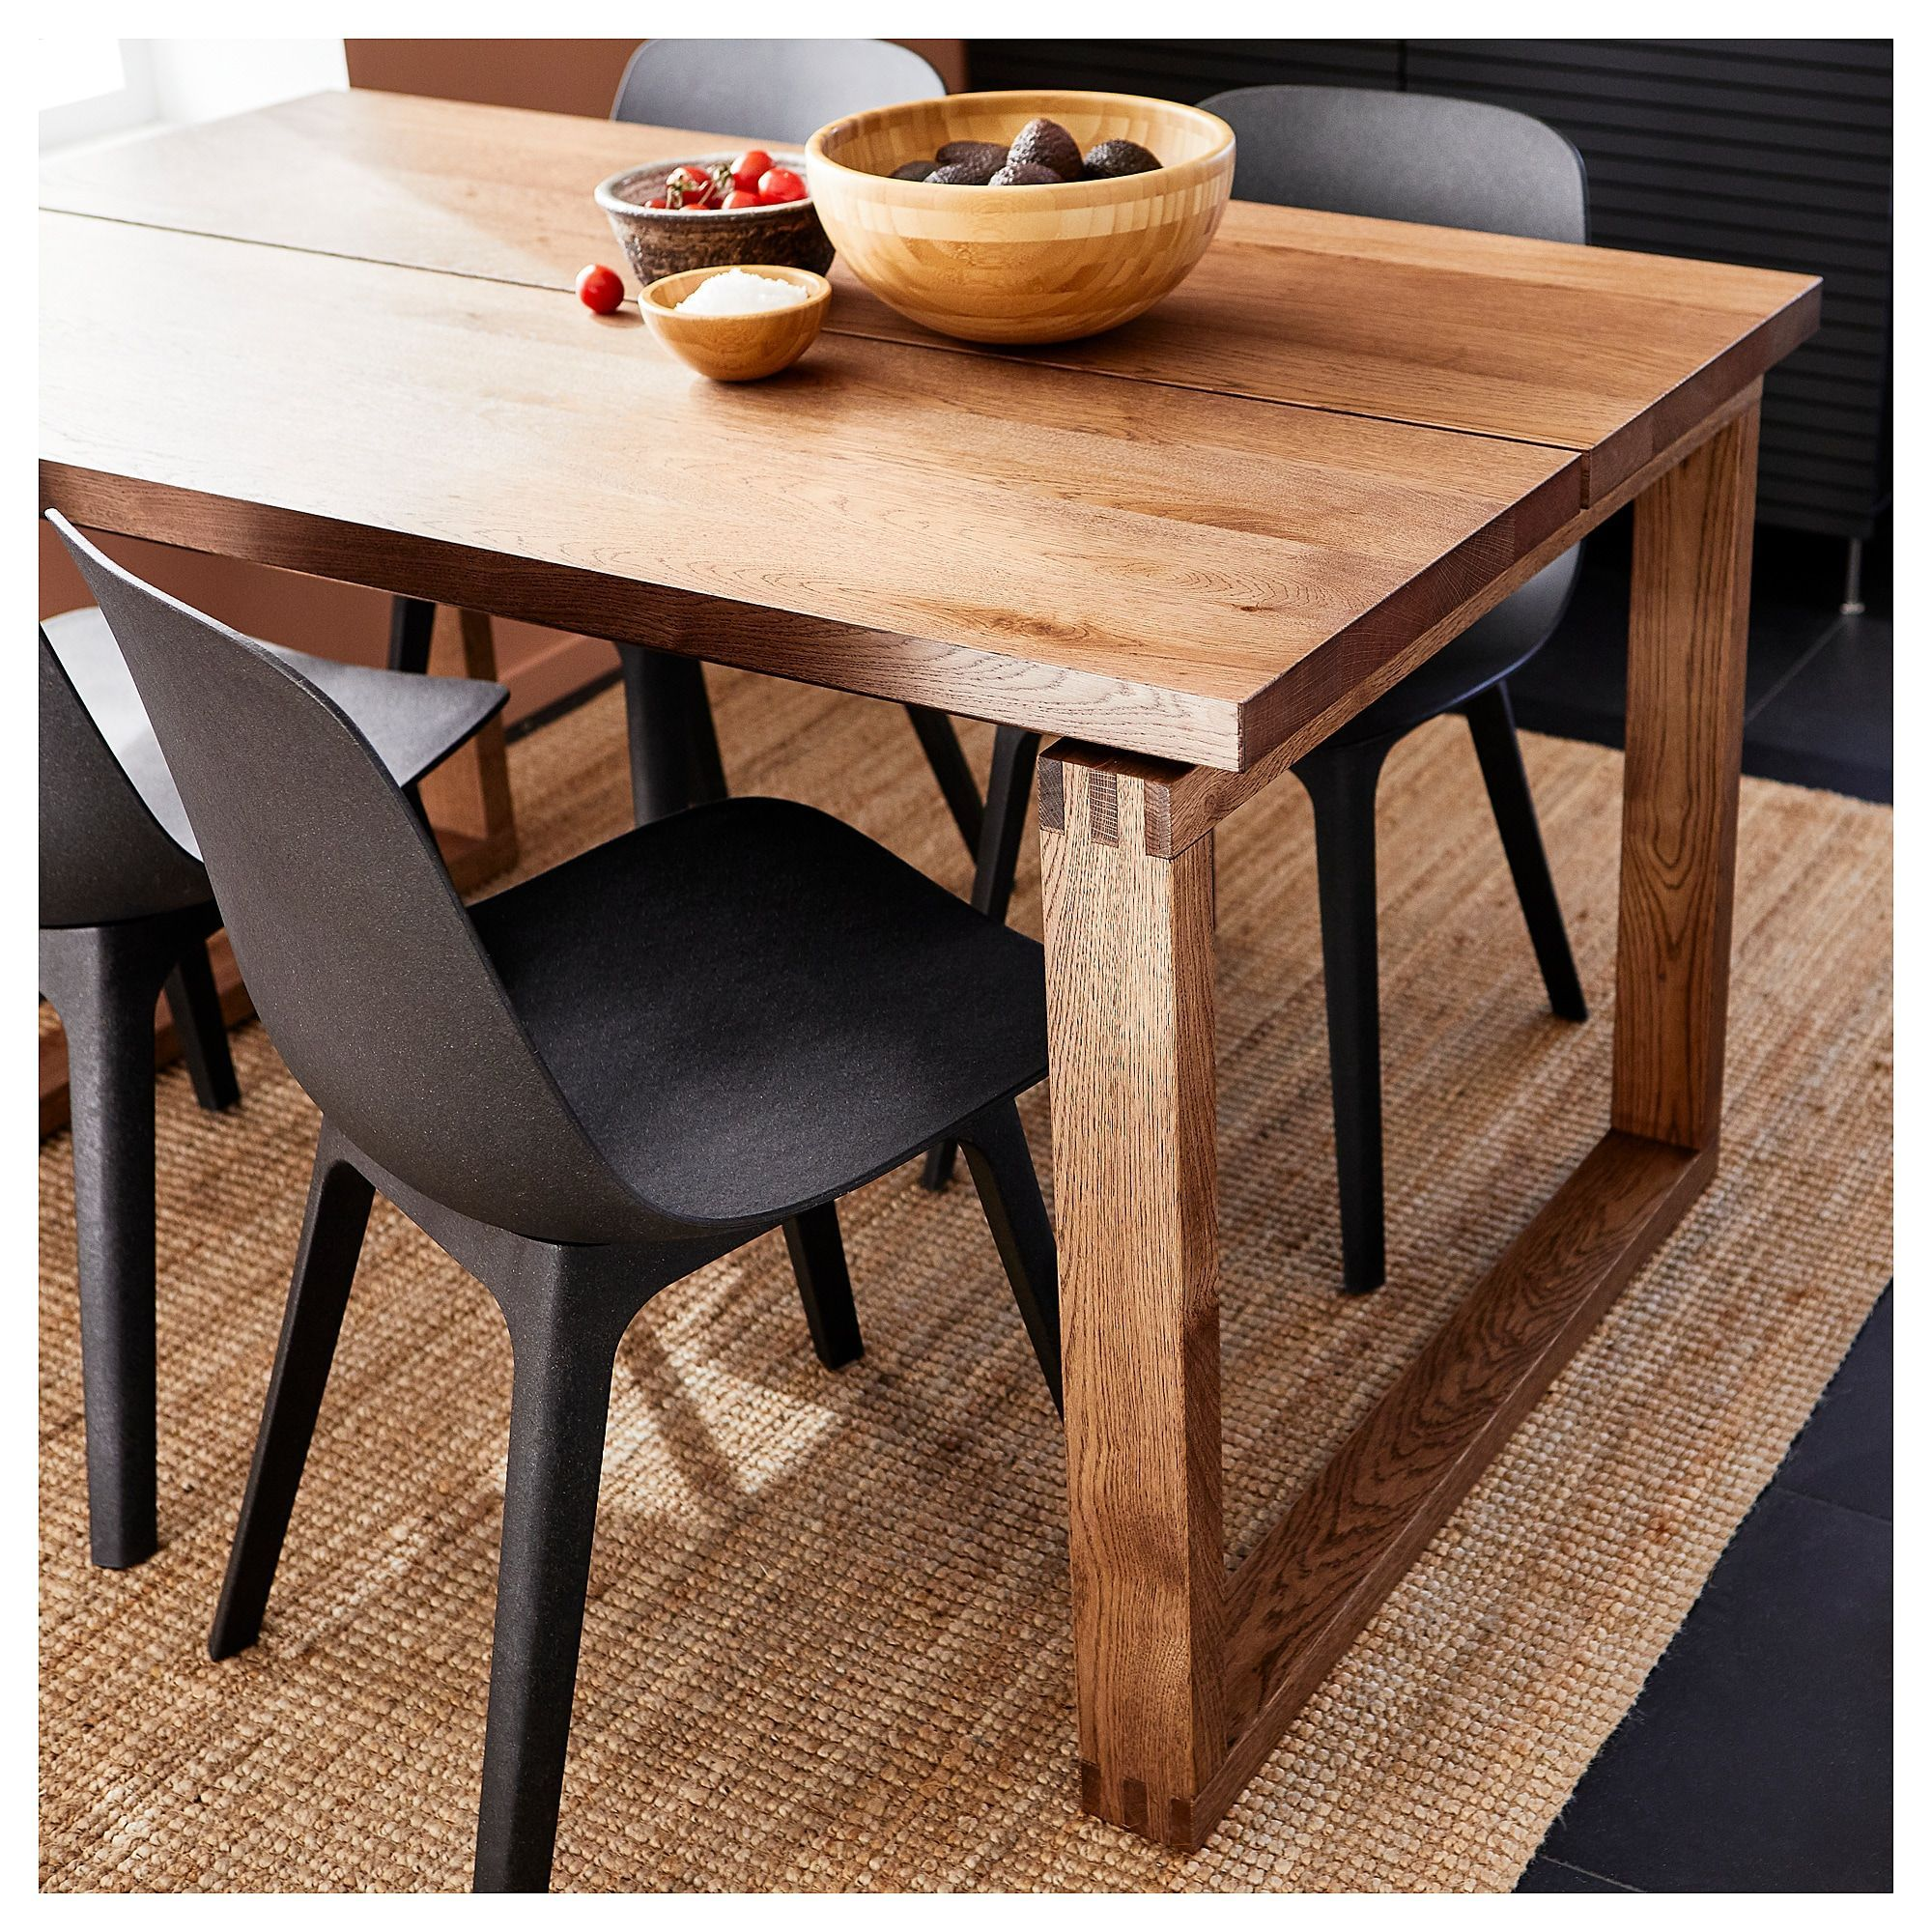 Morbylanga Odger Table And 4 Chairs Oak Veneer Brown Stained